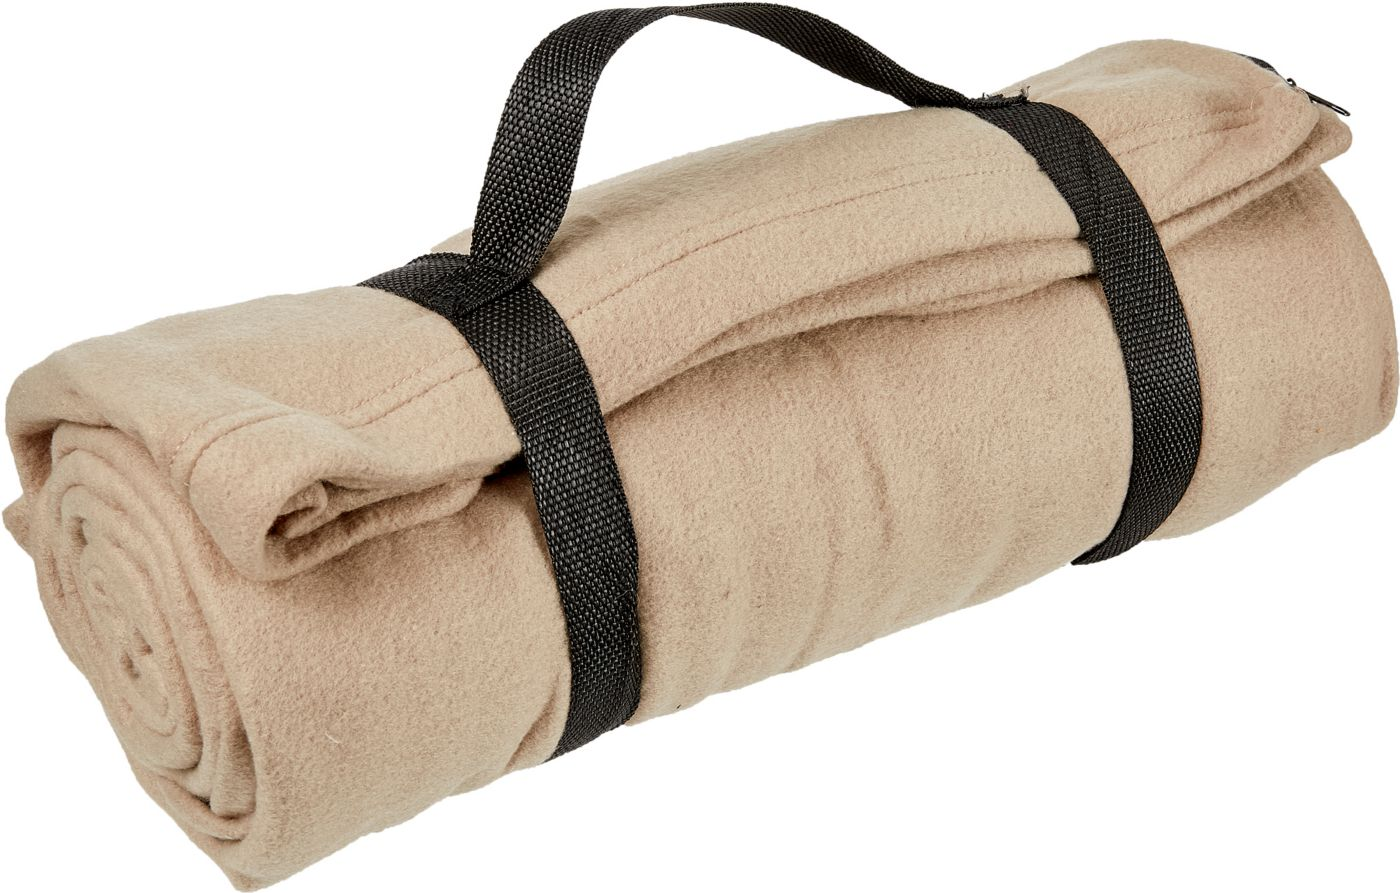 Field & Stream Fleece 50°F Sleeping Bag